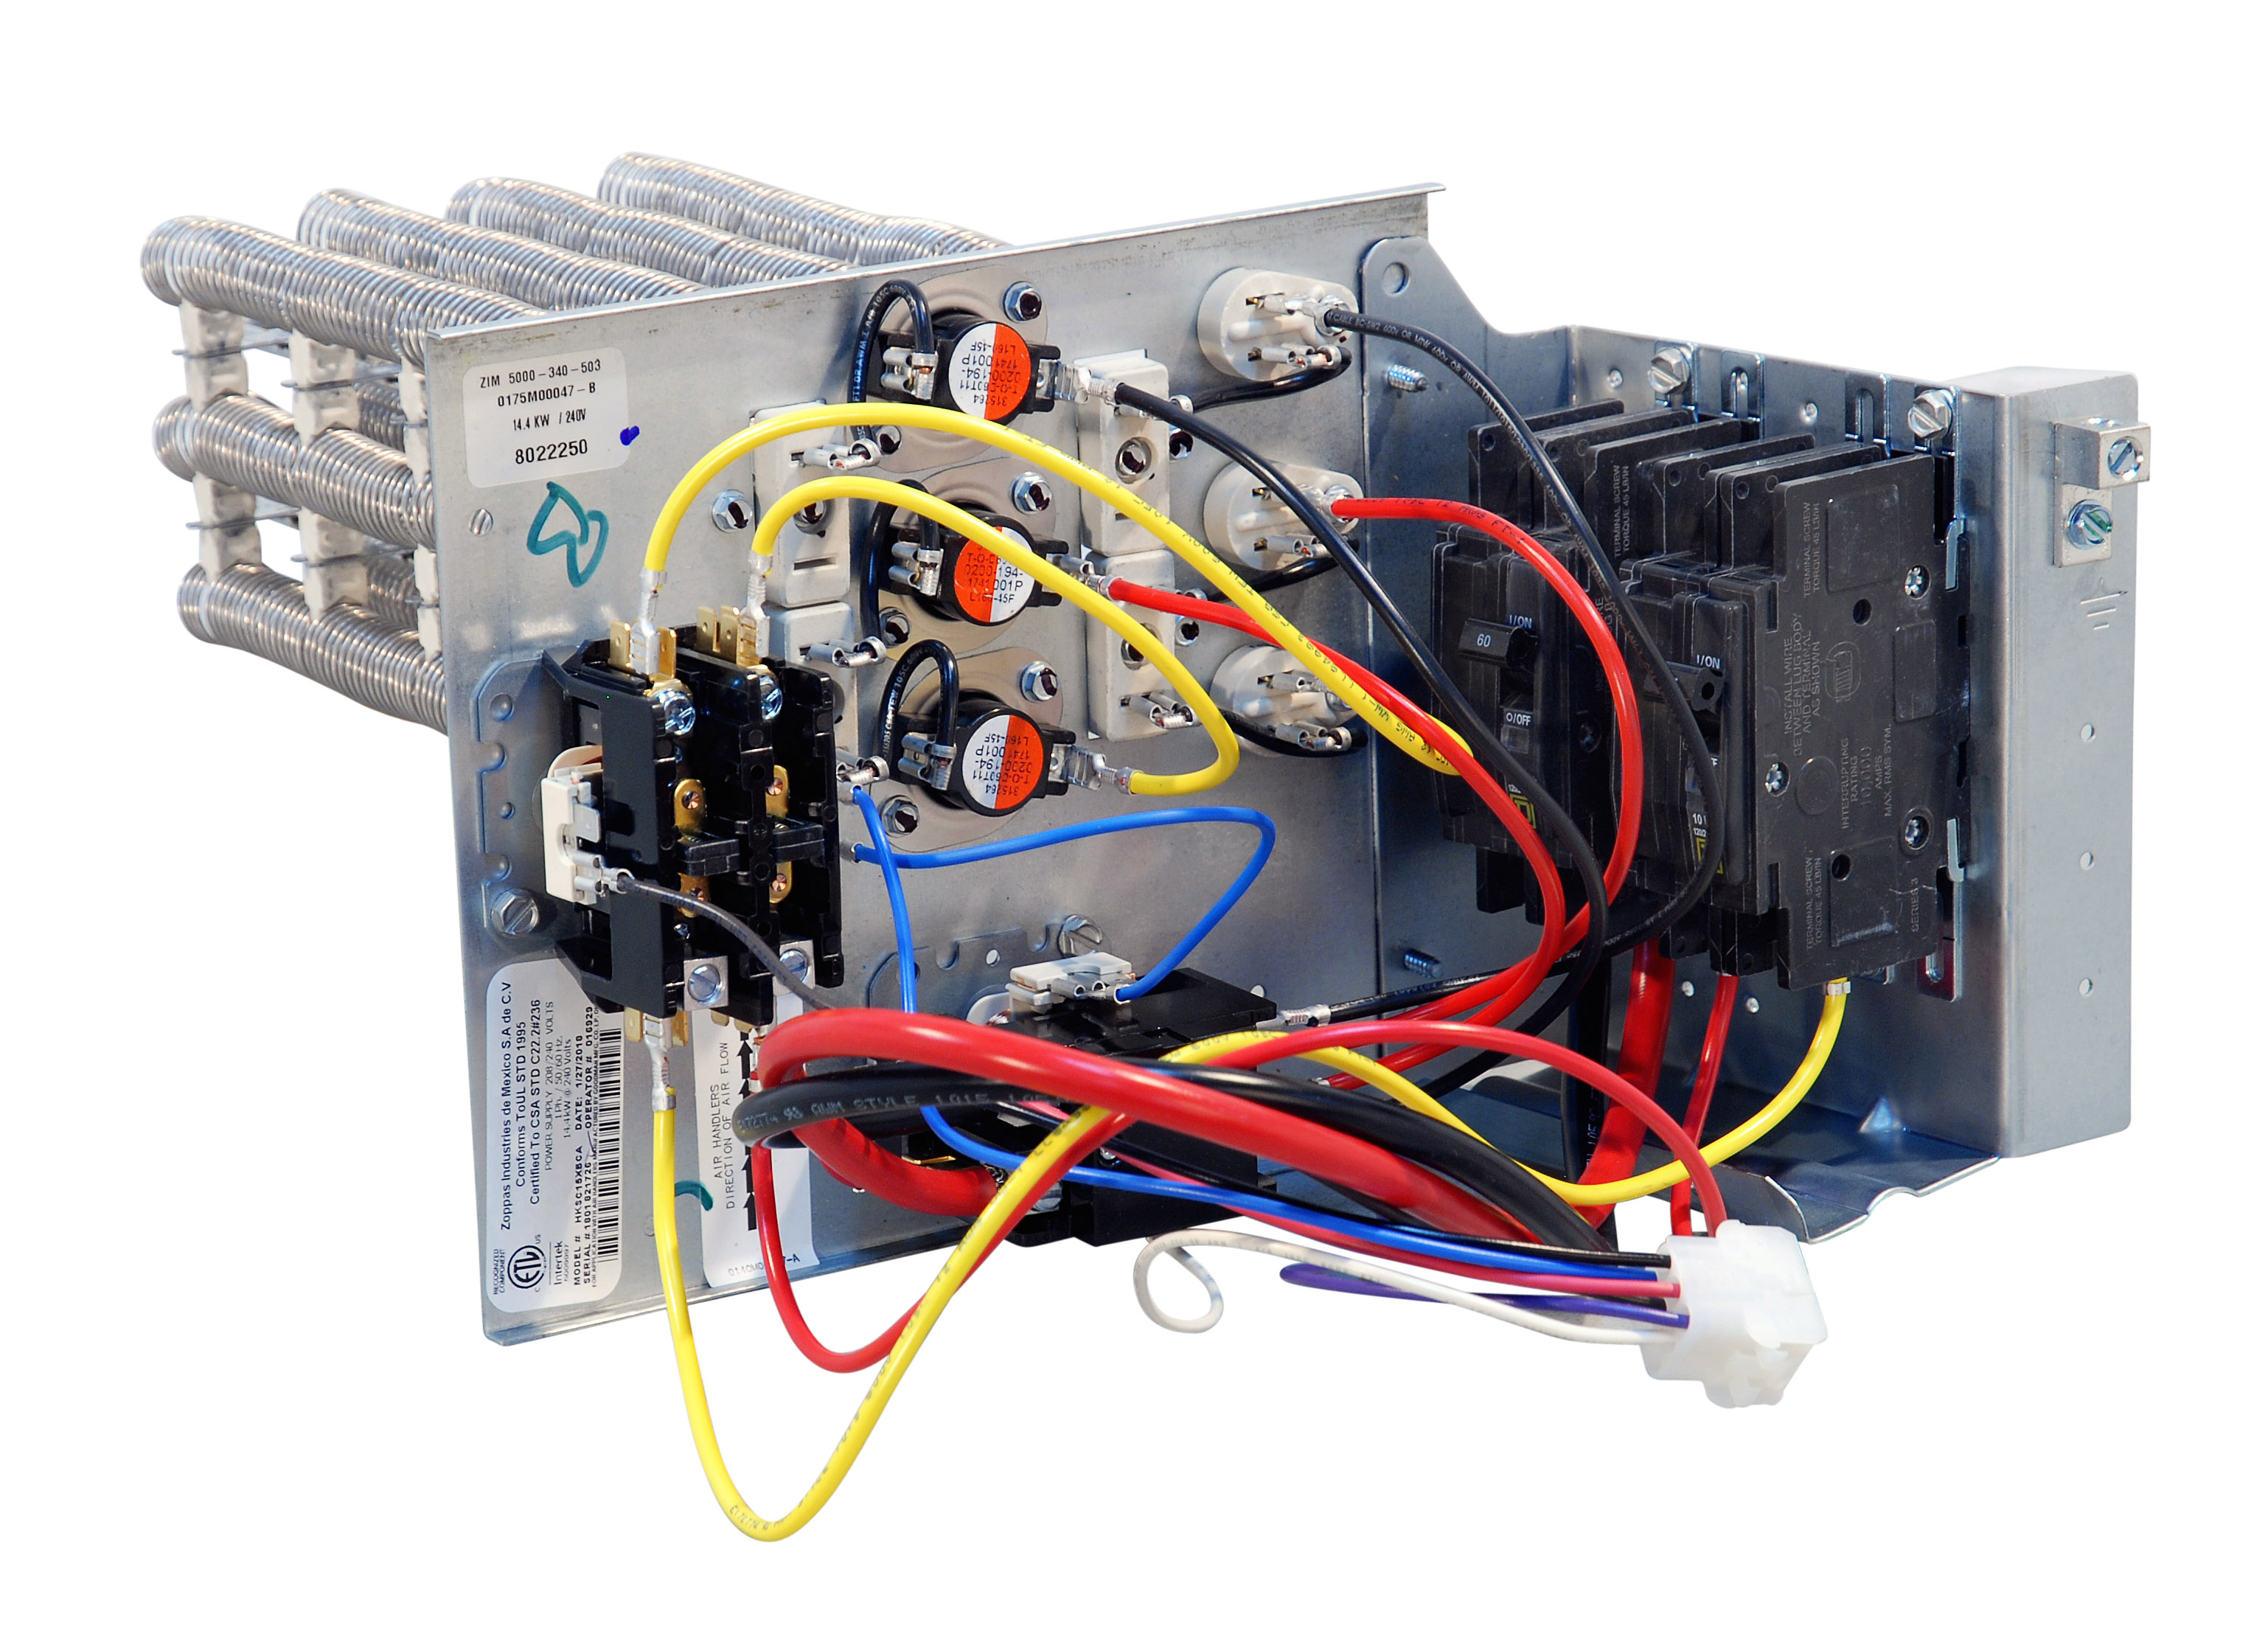 With Air Handler Wiring Diagrams Also Air Conditioner Contactor Wiring